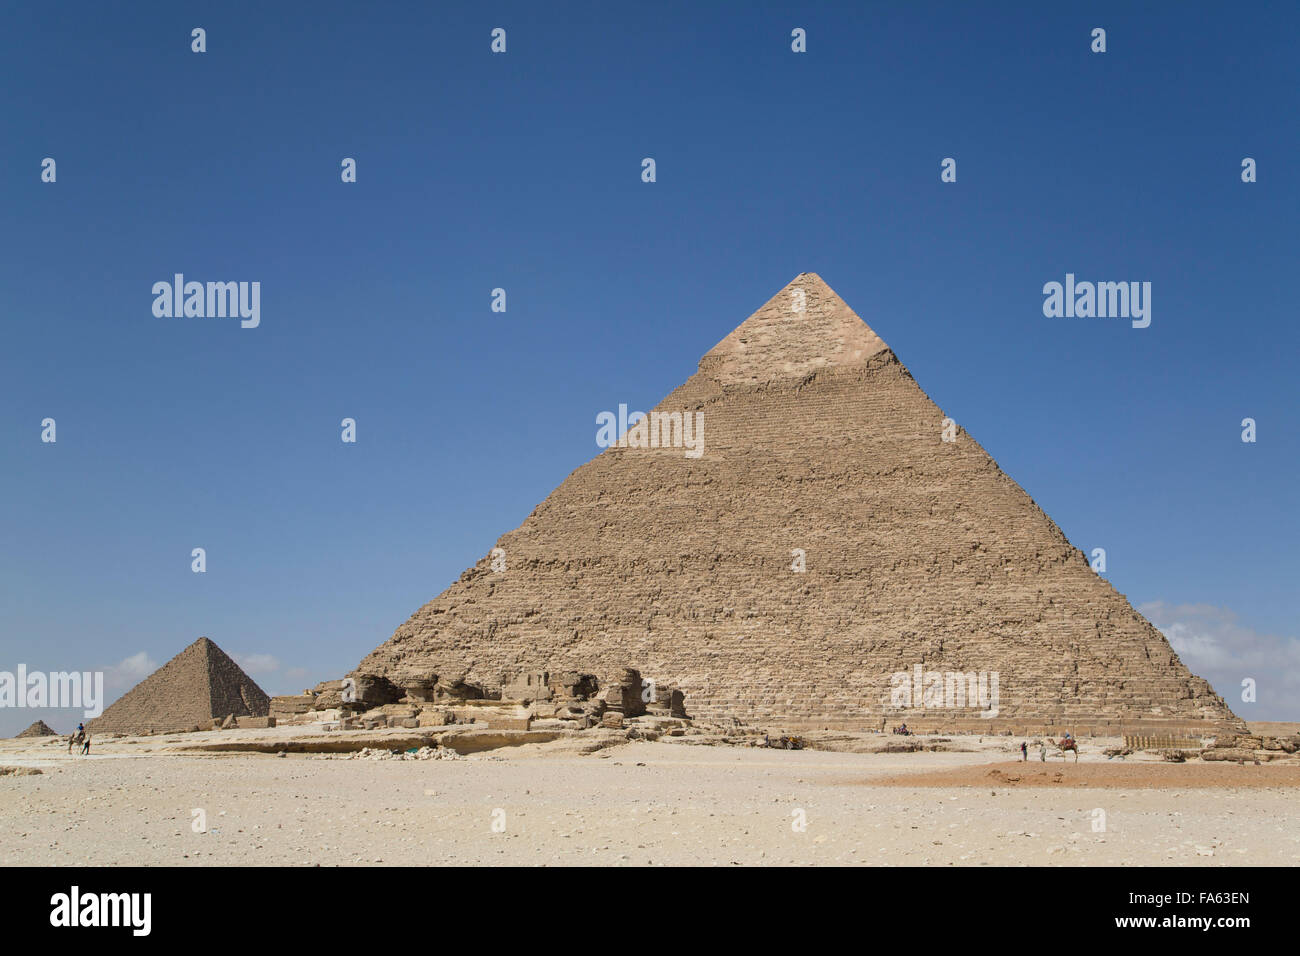 Pyramid of Chephren Or Khafre (foreground), The Giza Pyramids, Giza, Egypt - Stock Image